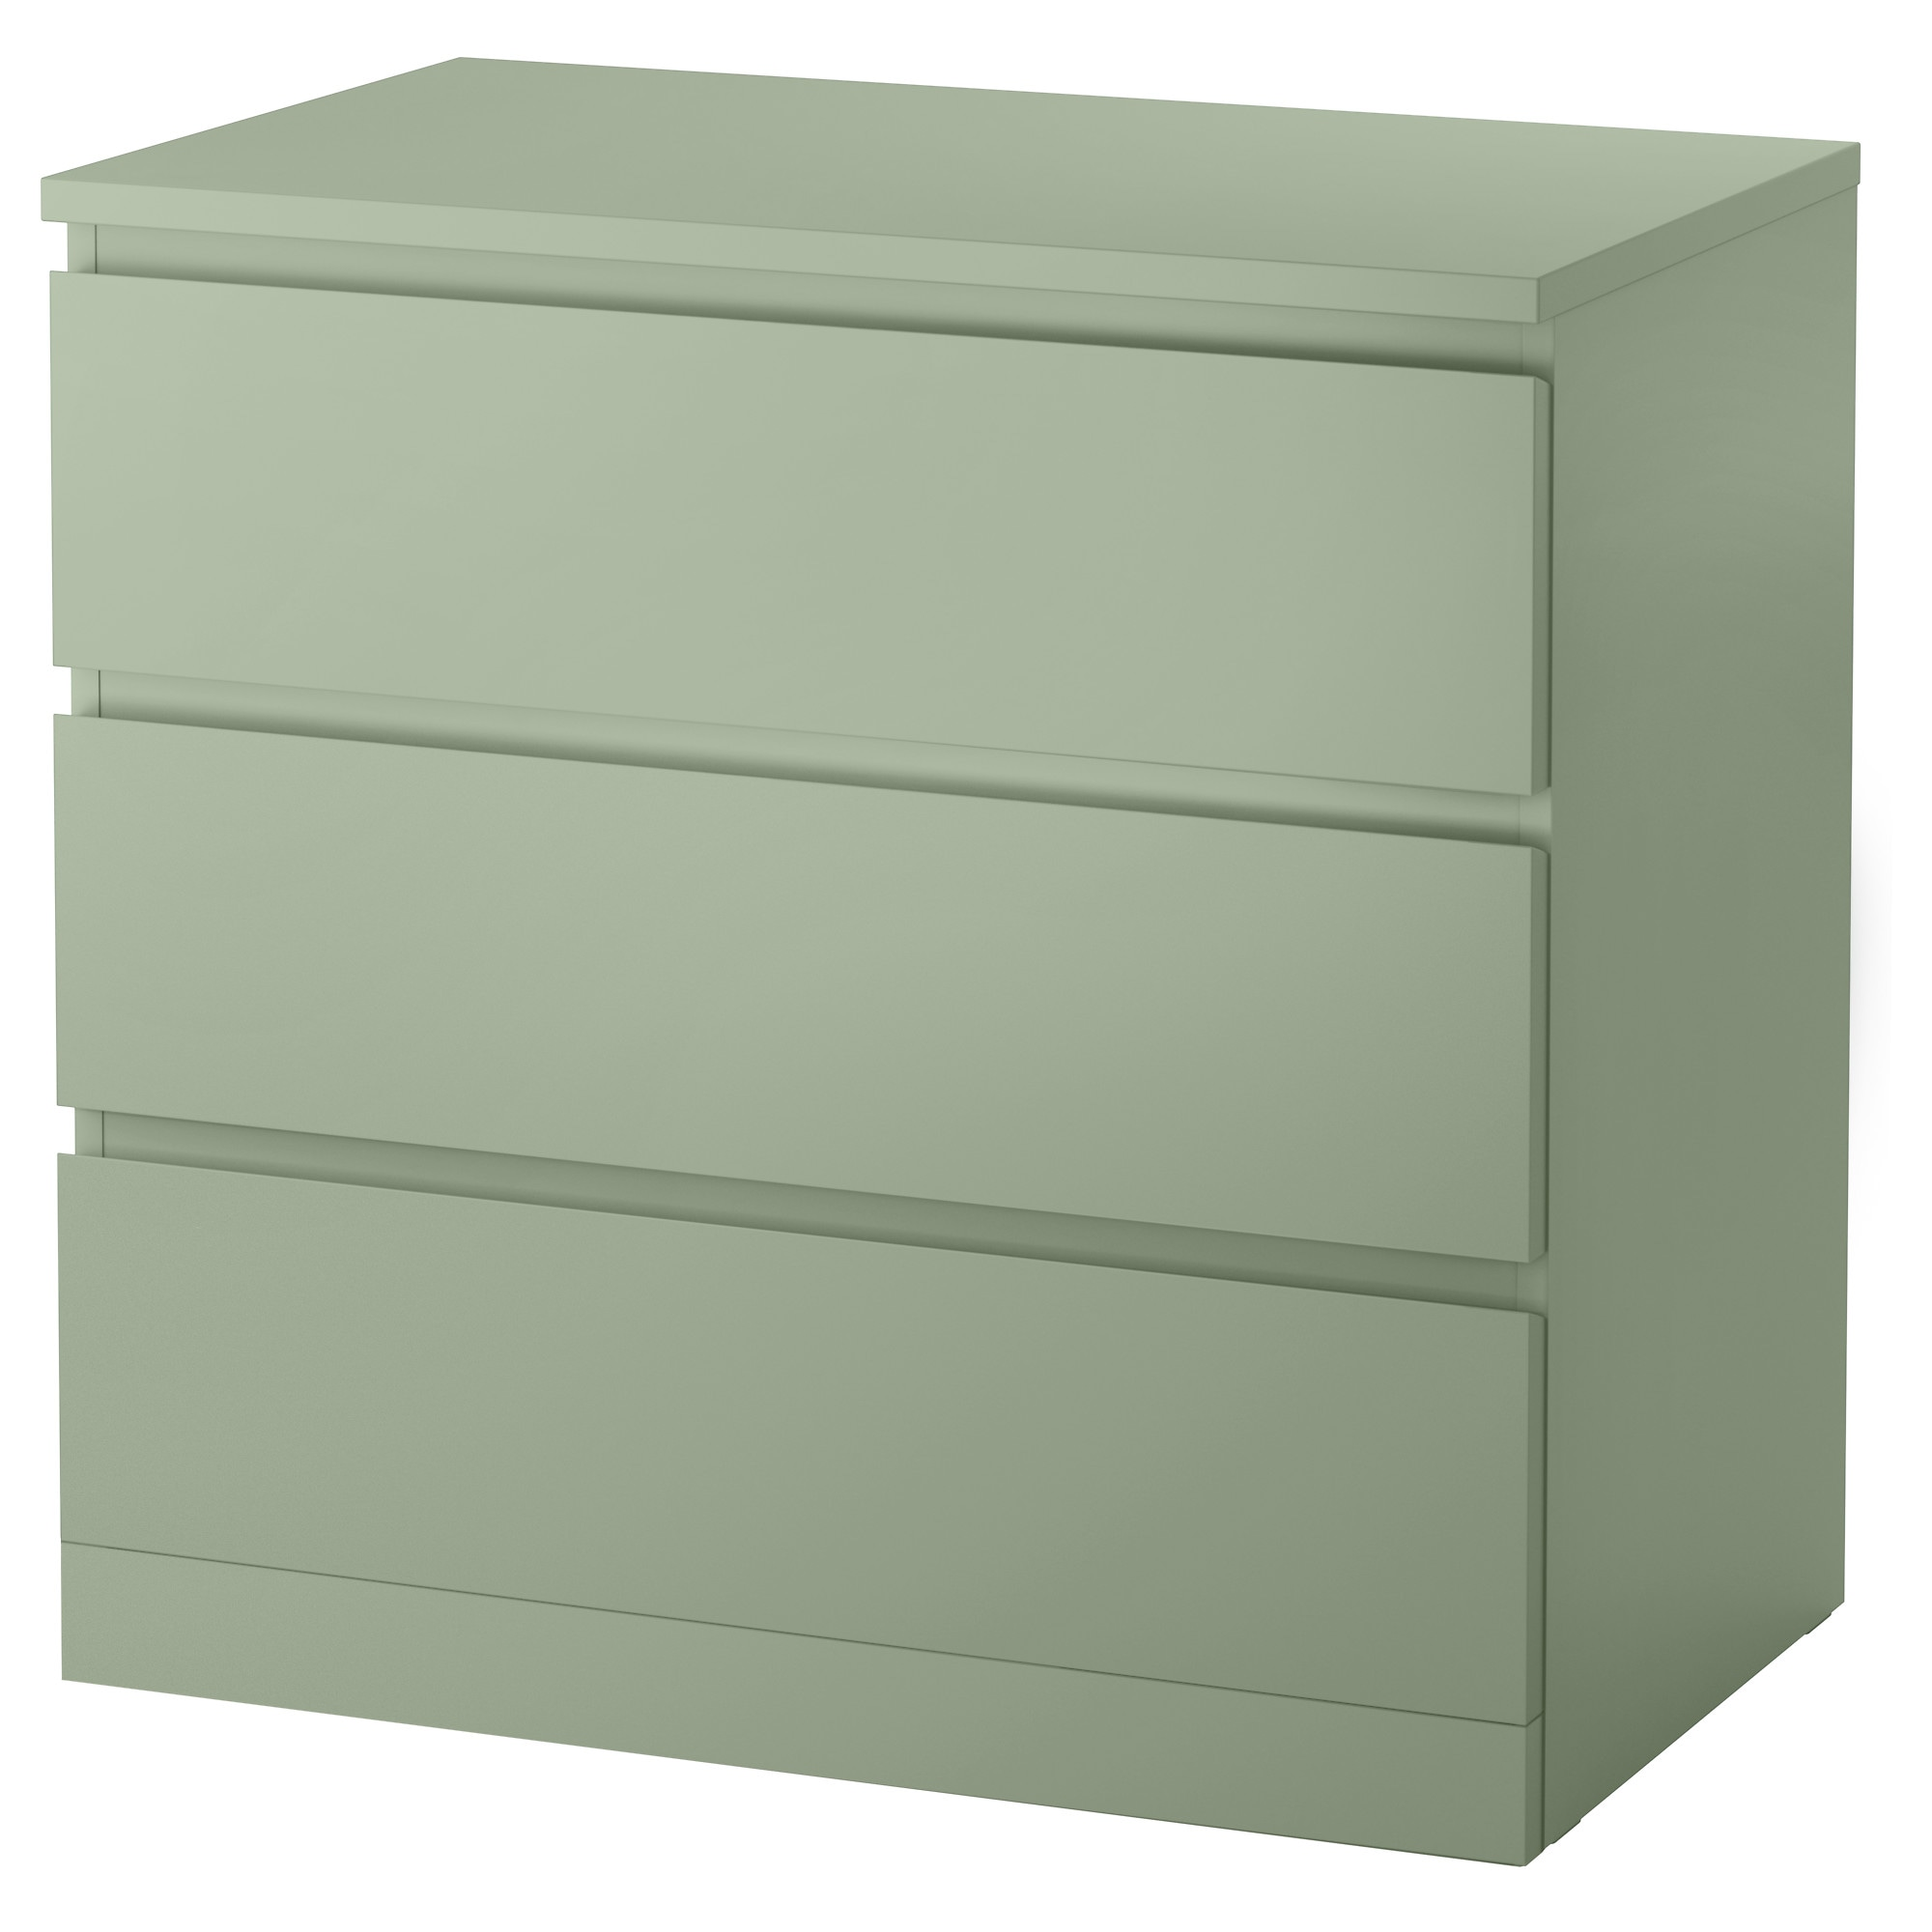 #577457 Ikea Malm Dresser 3 Drawer Www.imgkid.com The Image Kid Has It! with 2000x2000 px of Recommended Ikea Large Dresser 20002000 save image @ avoidforclosure.info